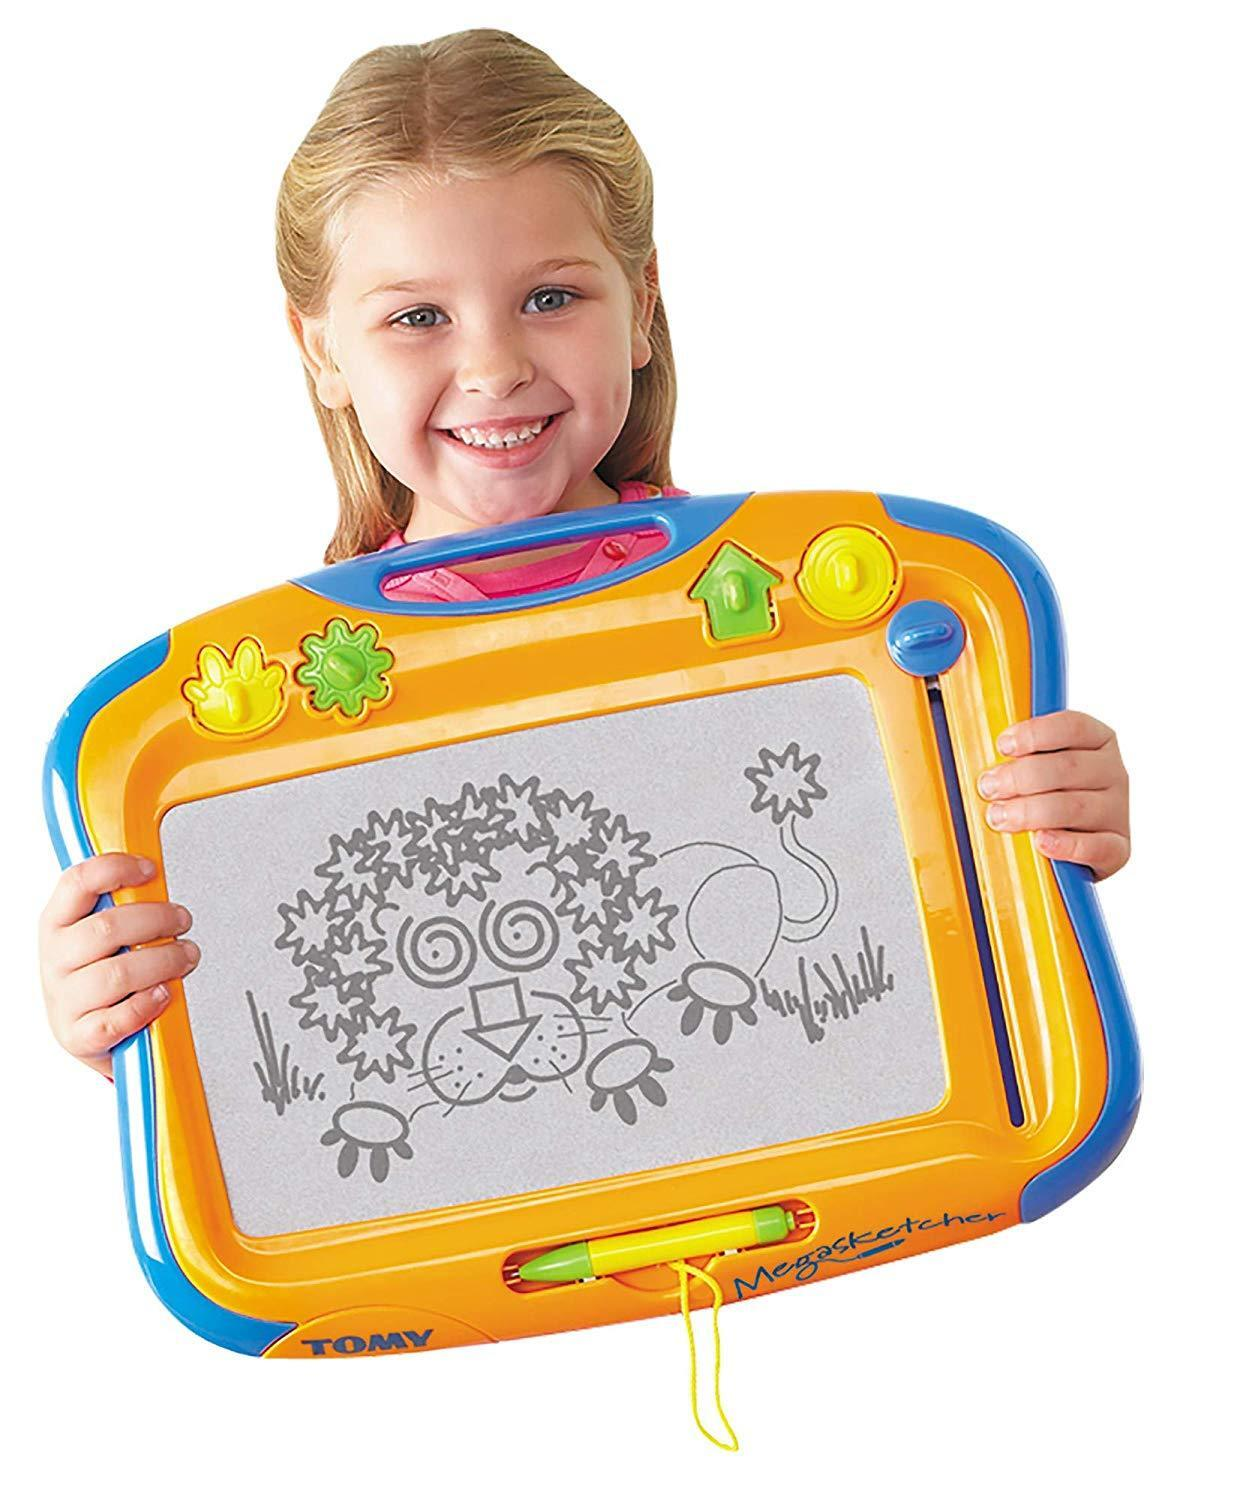 TOMY 6555 Megasketcher Magnetic Childrens Kids Drawing Sketching Board Toy